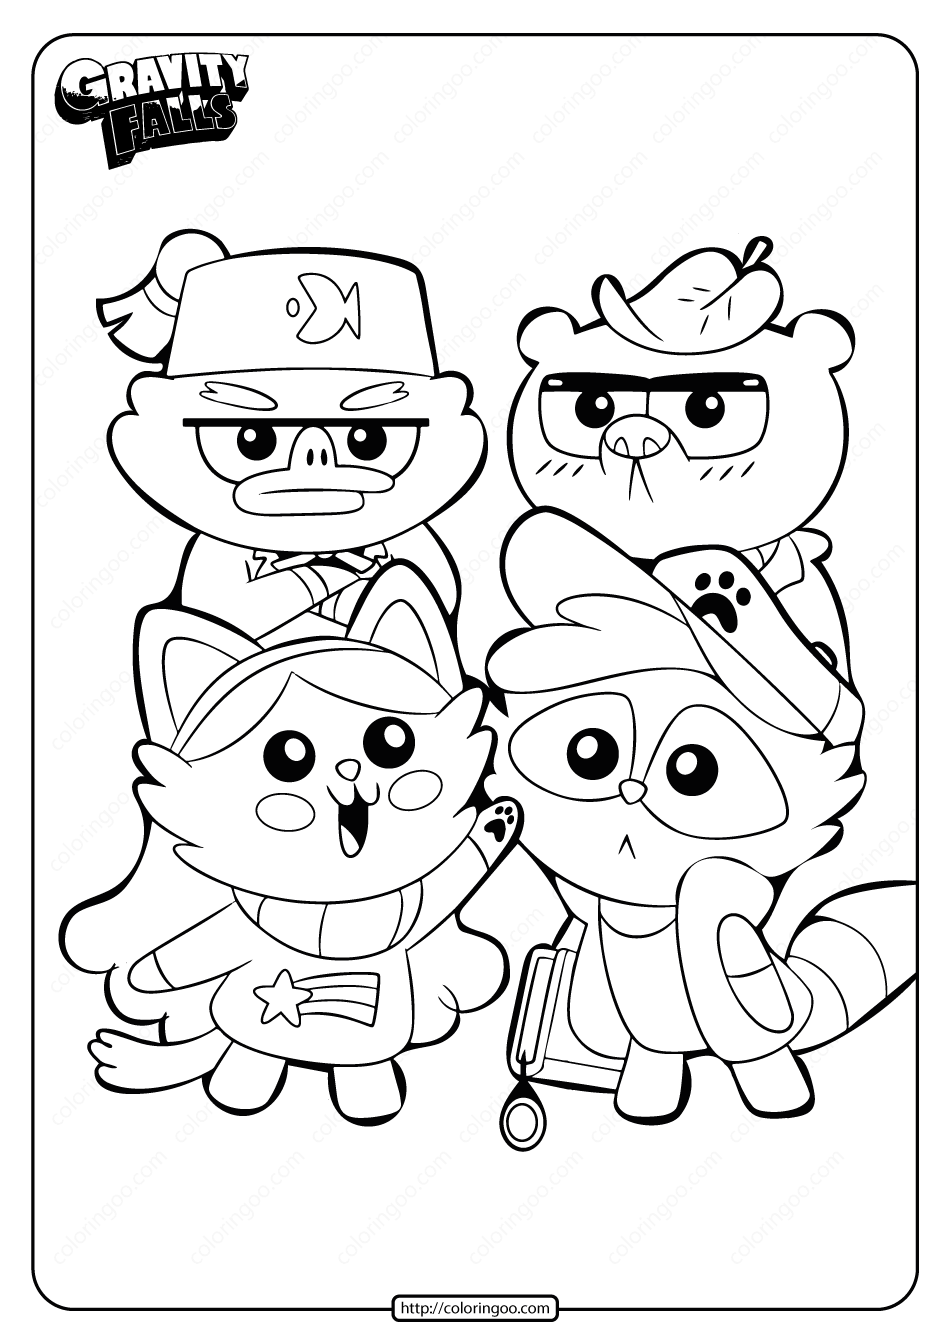 Gravity Falls Free Coloring Pages Collection